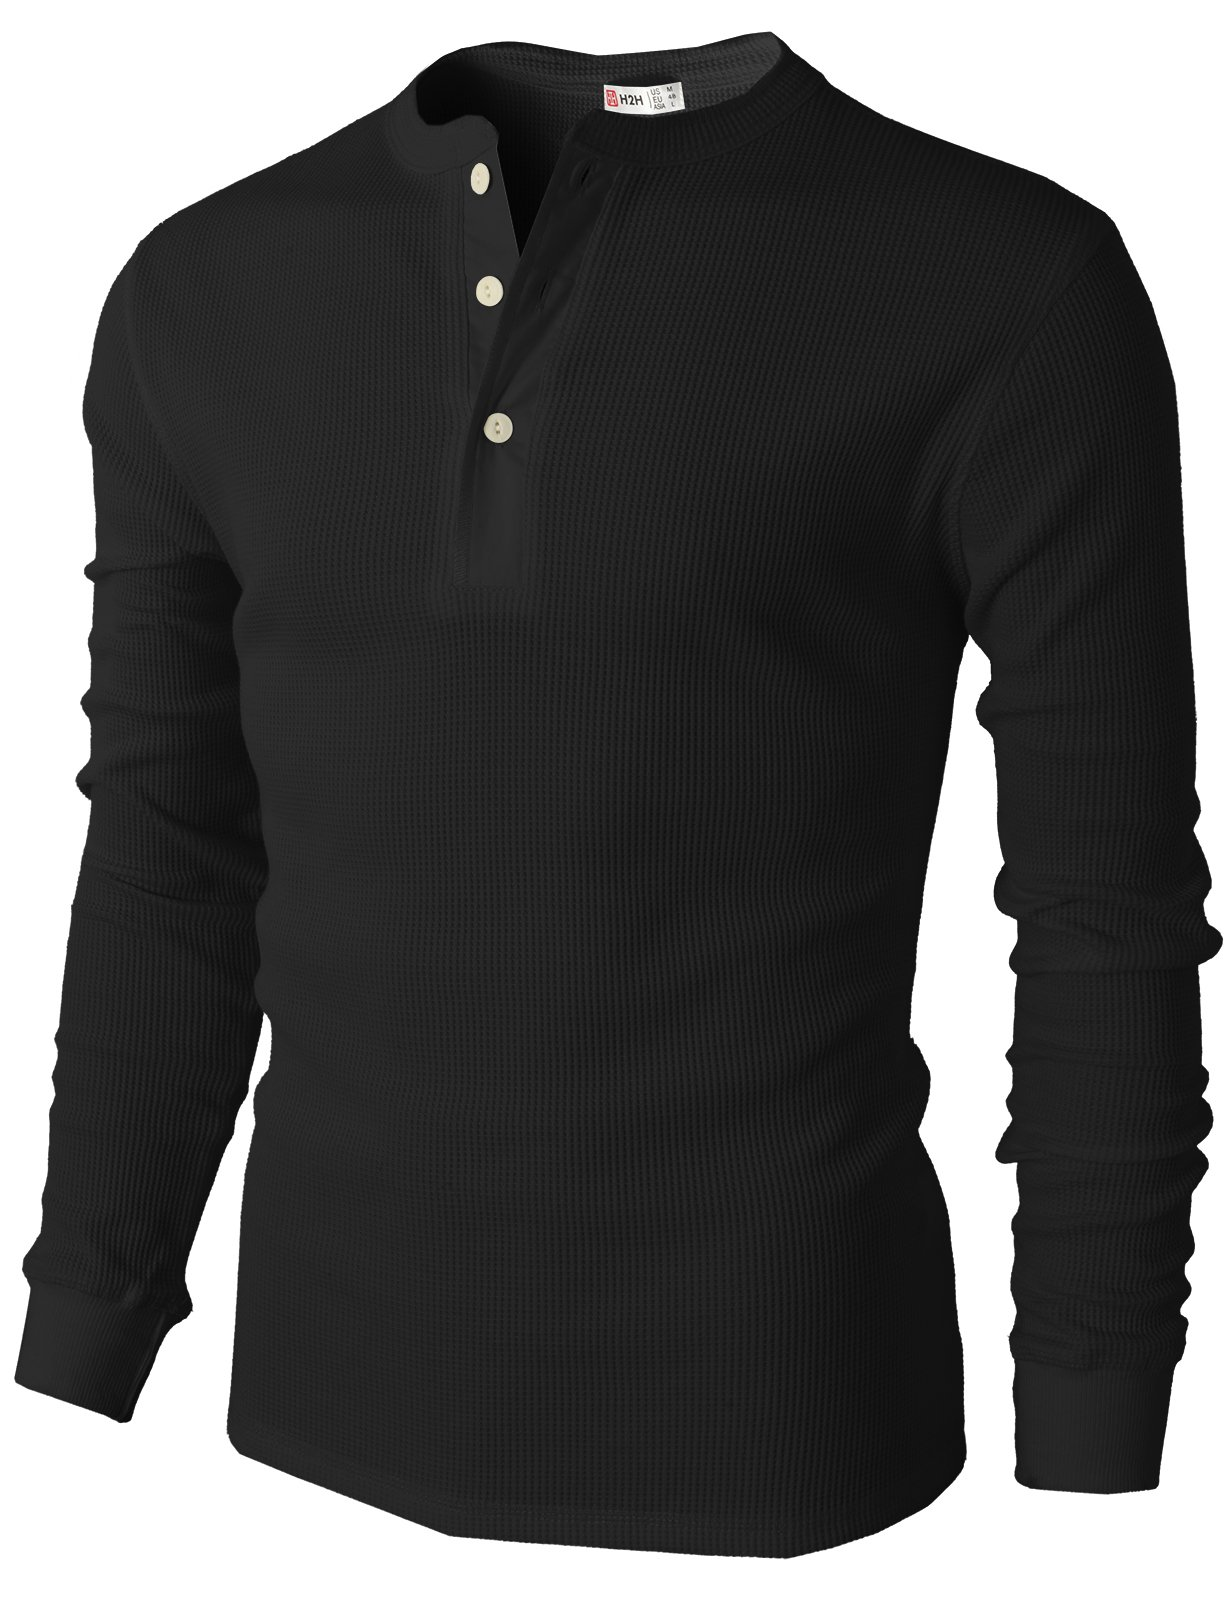 H2H Men's Casual Henley Shirt with Button Black US L/Asia XL (CMTTL045) by H2H